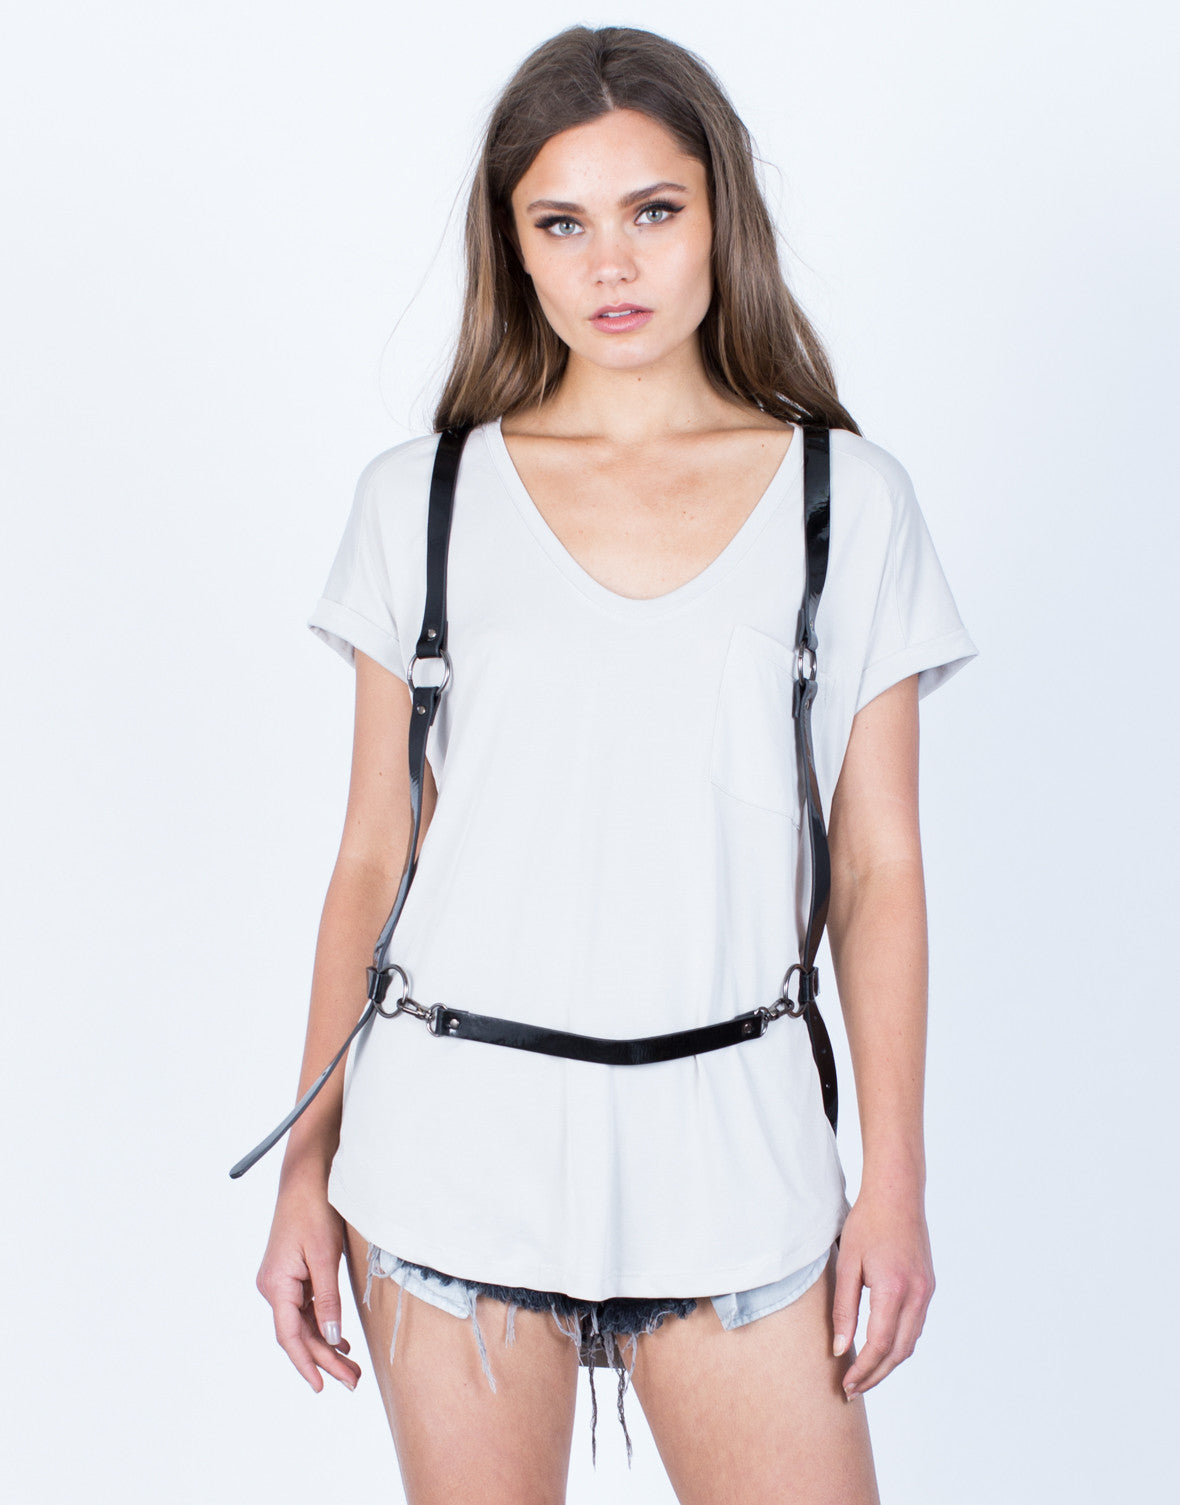 suspender harness black 1?v=1497041951 suspender harness belt black patent leather belt black leather harness belt at eliteediting.co